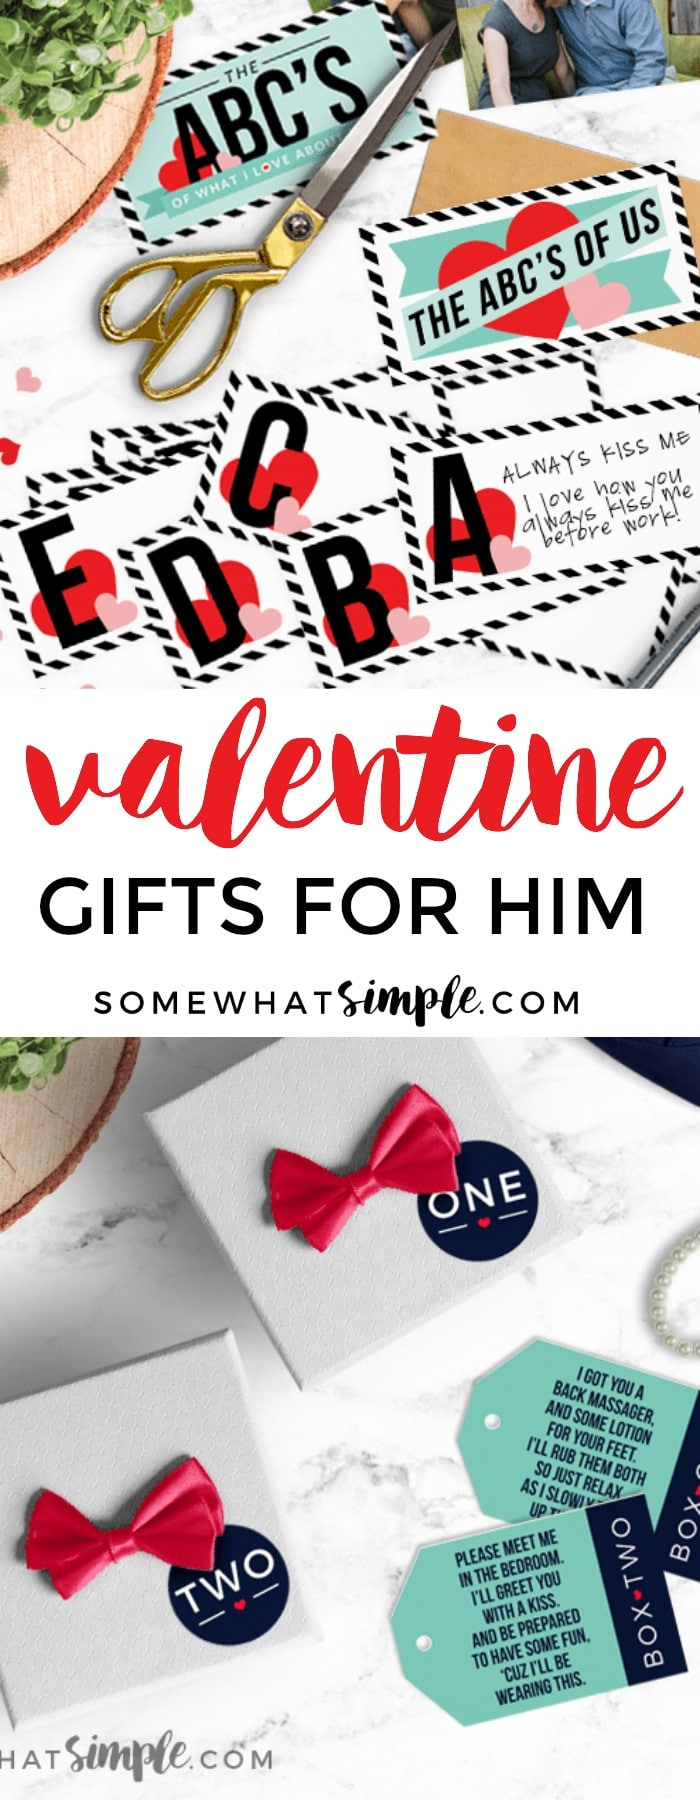 20 favorite Valentine Gifts for him that he is sure to LOVE!